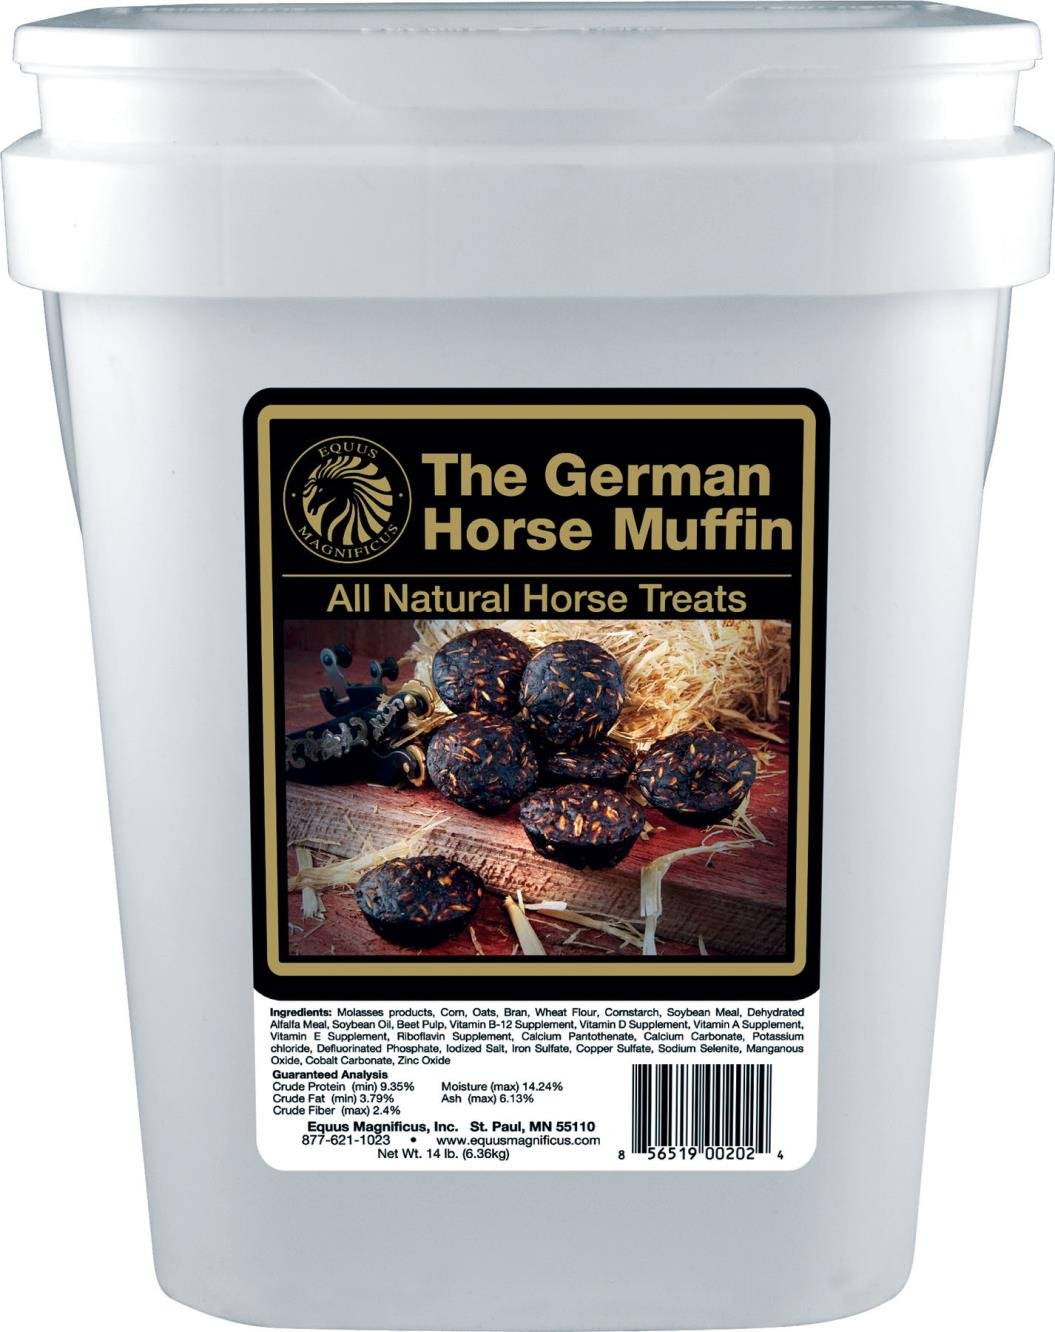 DPD The German Horse Muffin All Natural Horse Treats - 14 Pound Bucket